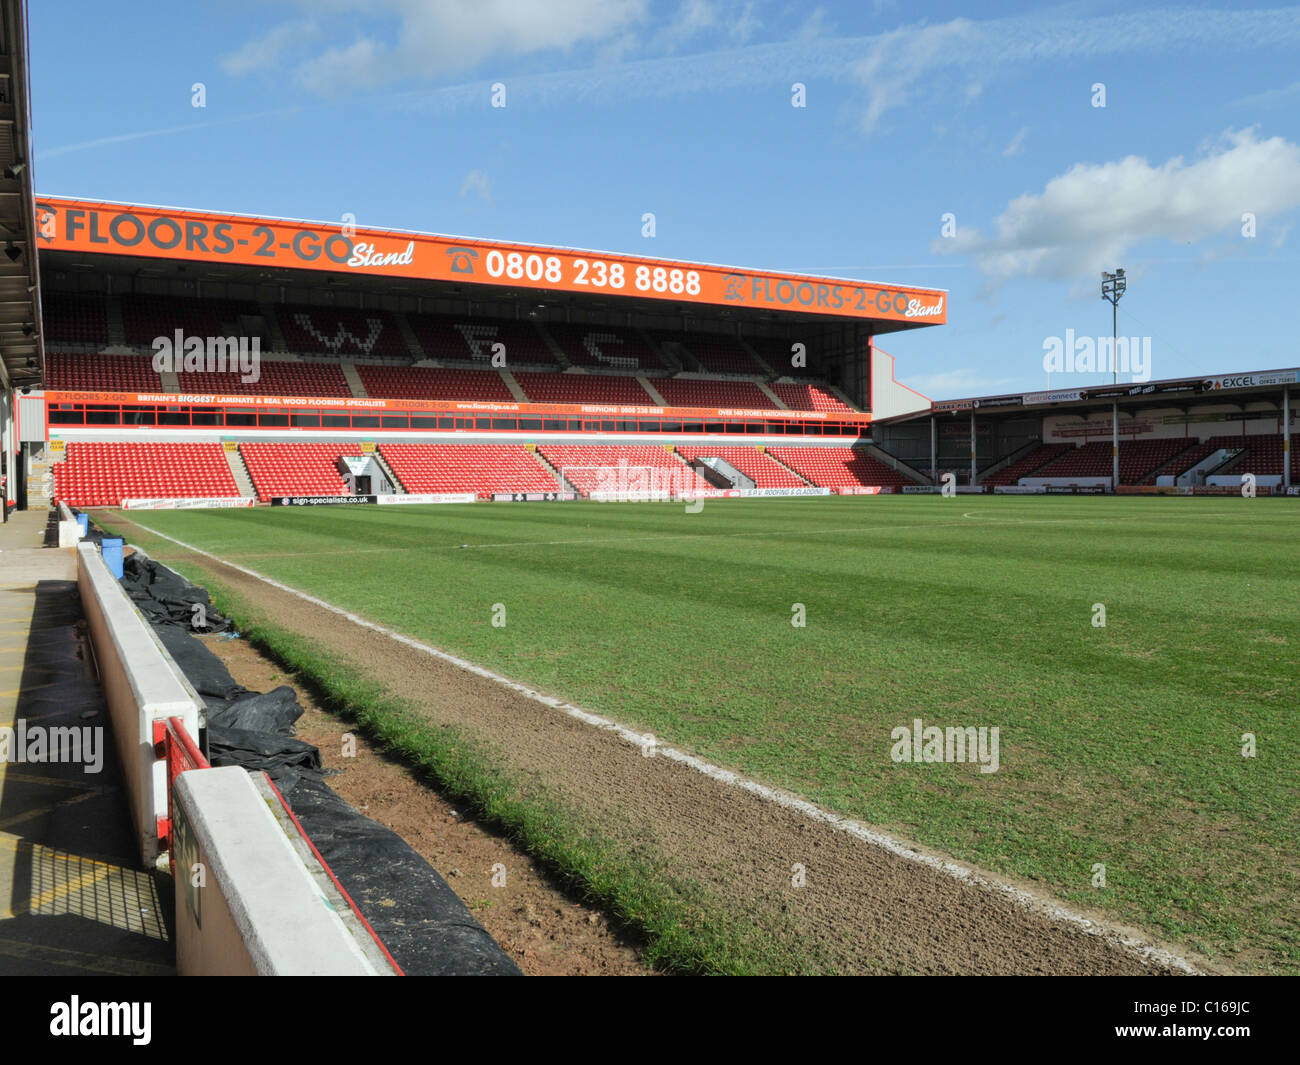 Inside Walsall Football Club's Banks's Stadium looking towards up the pitch towards its Floors-2-Go stand - Stock Image